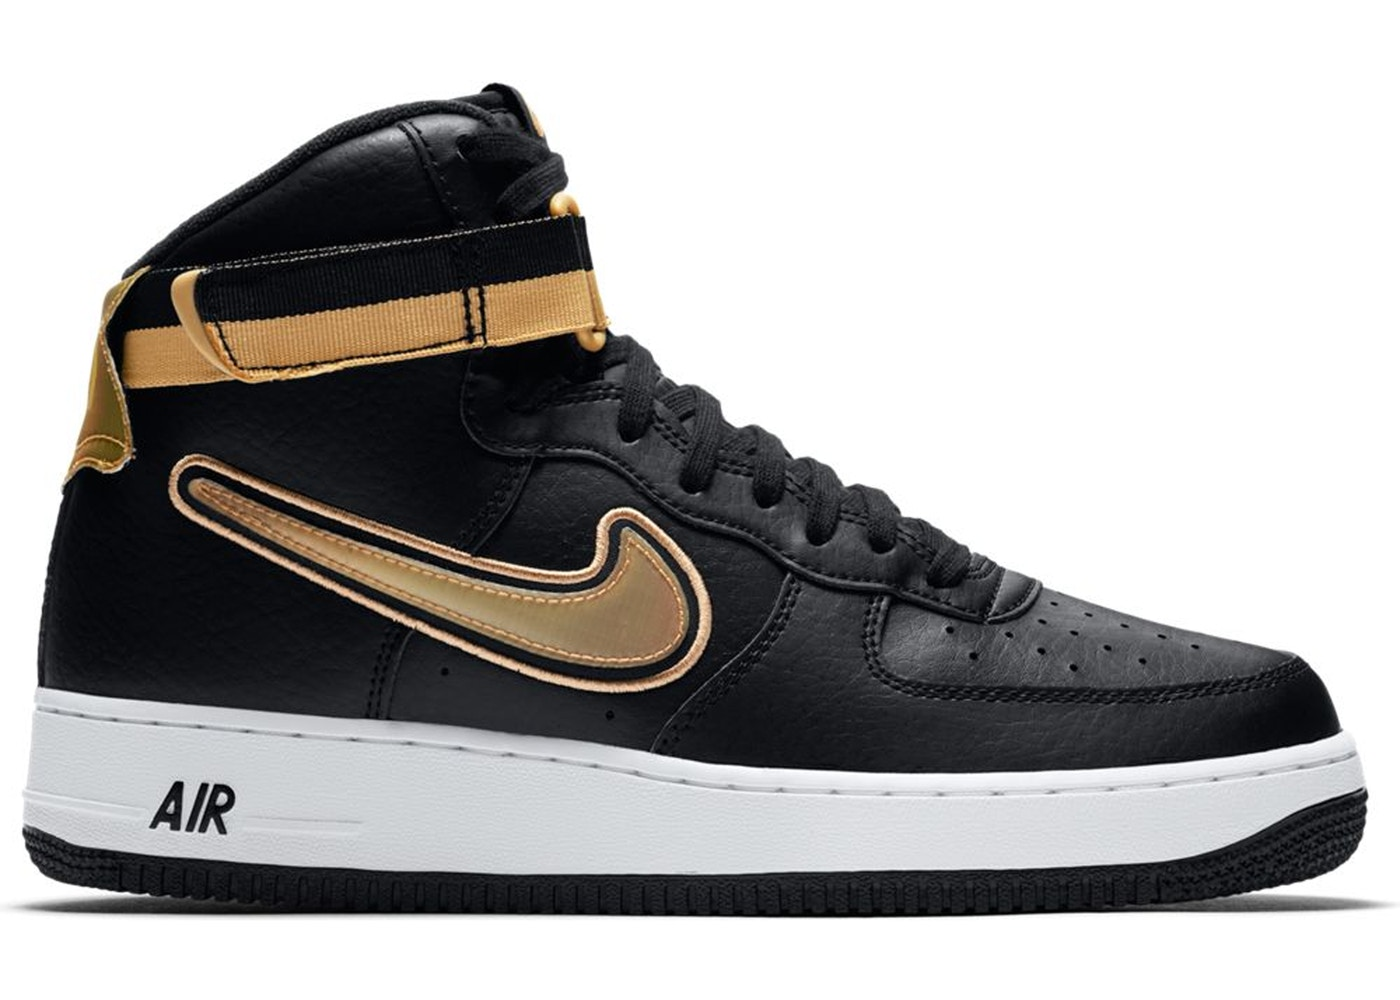 Nike Air Force 1 High Nba Black Metallic Gold Av3938 001